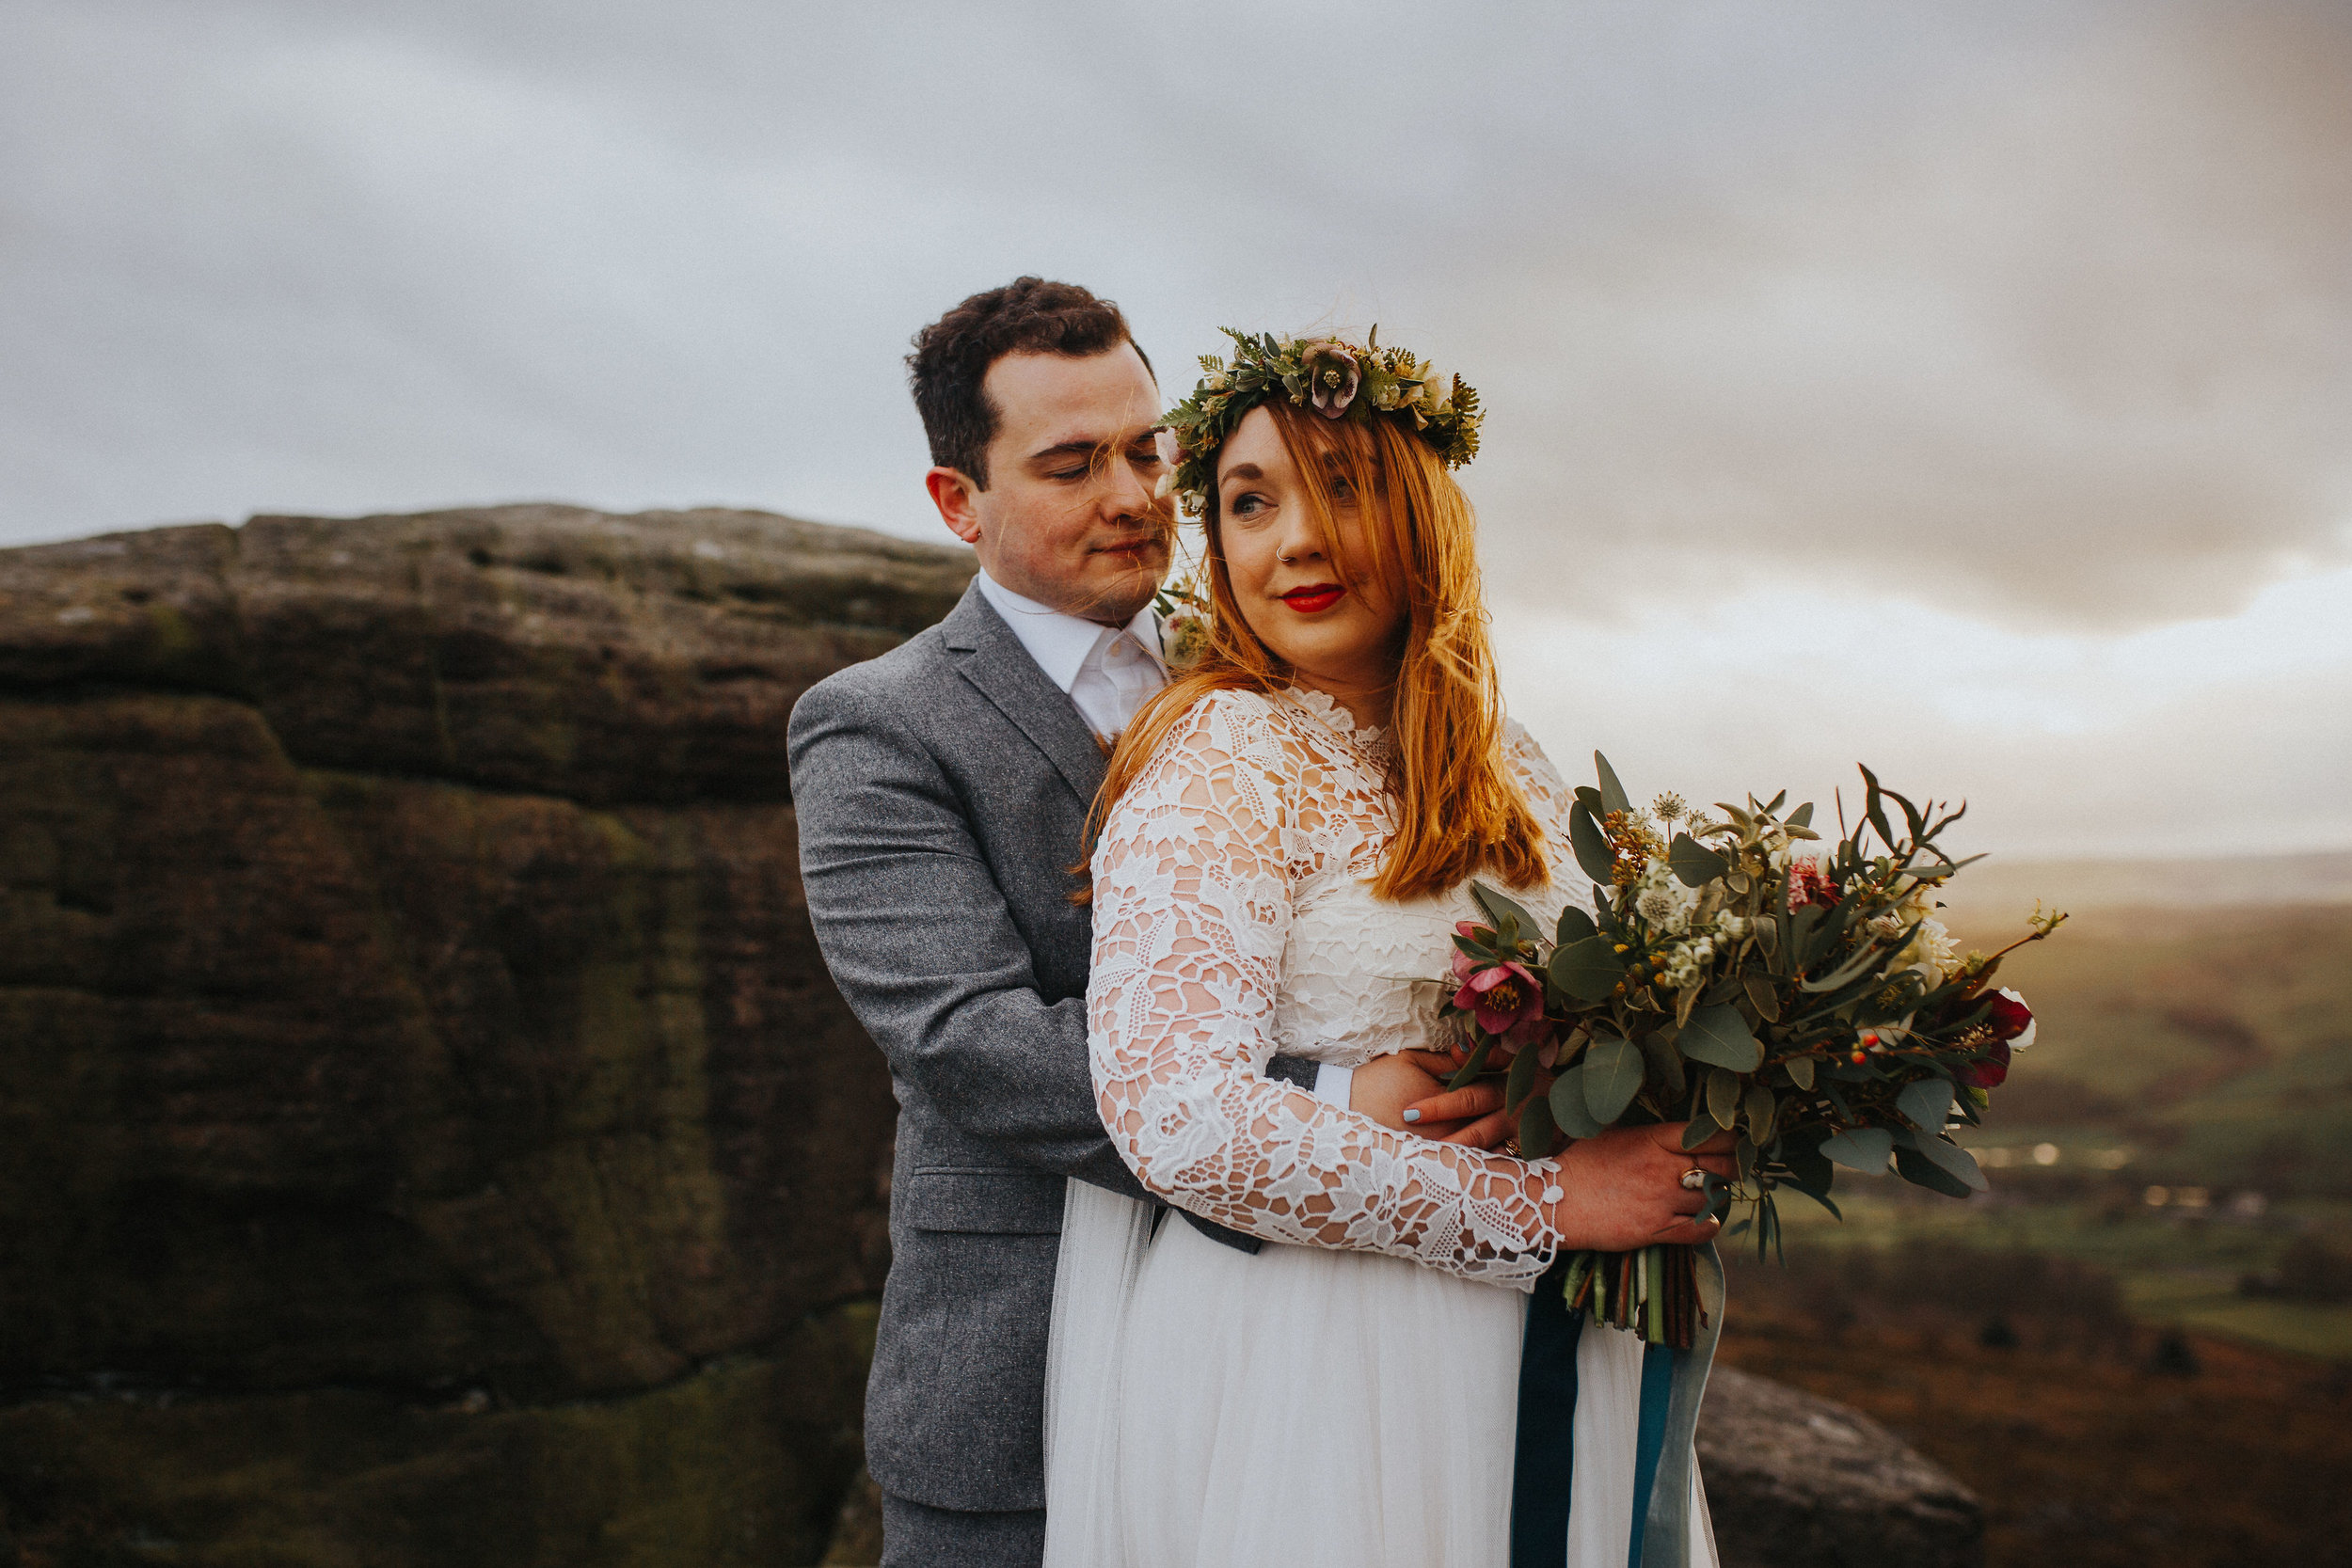 Rosie-peak district-bride-bespoke-long sleeved-lace-tulle-winter-wedding-dress-matlock-susanna-greening-12